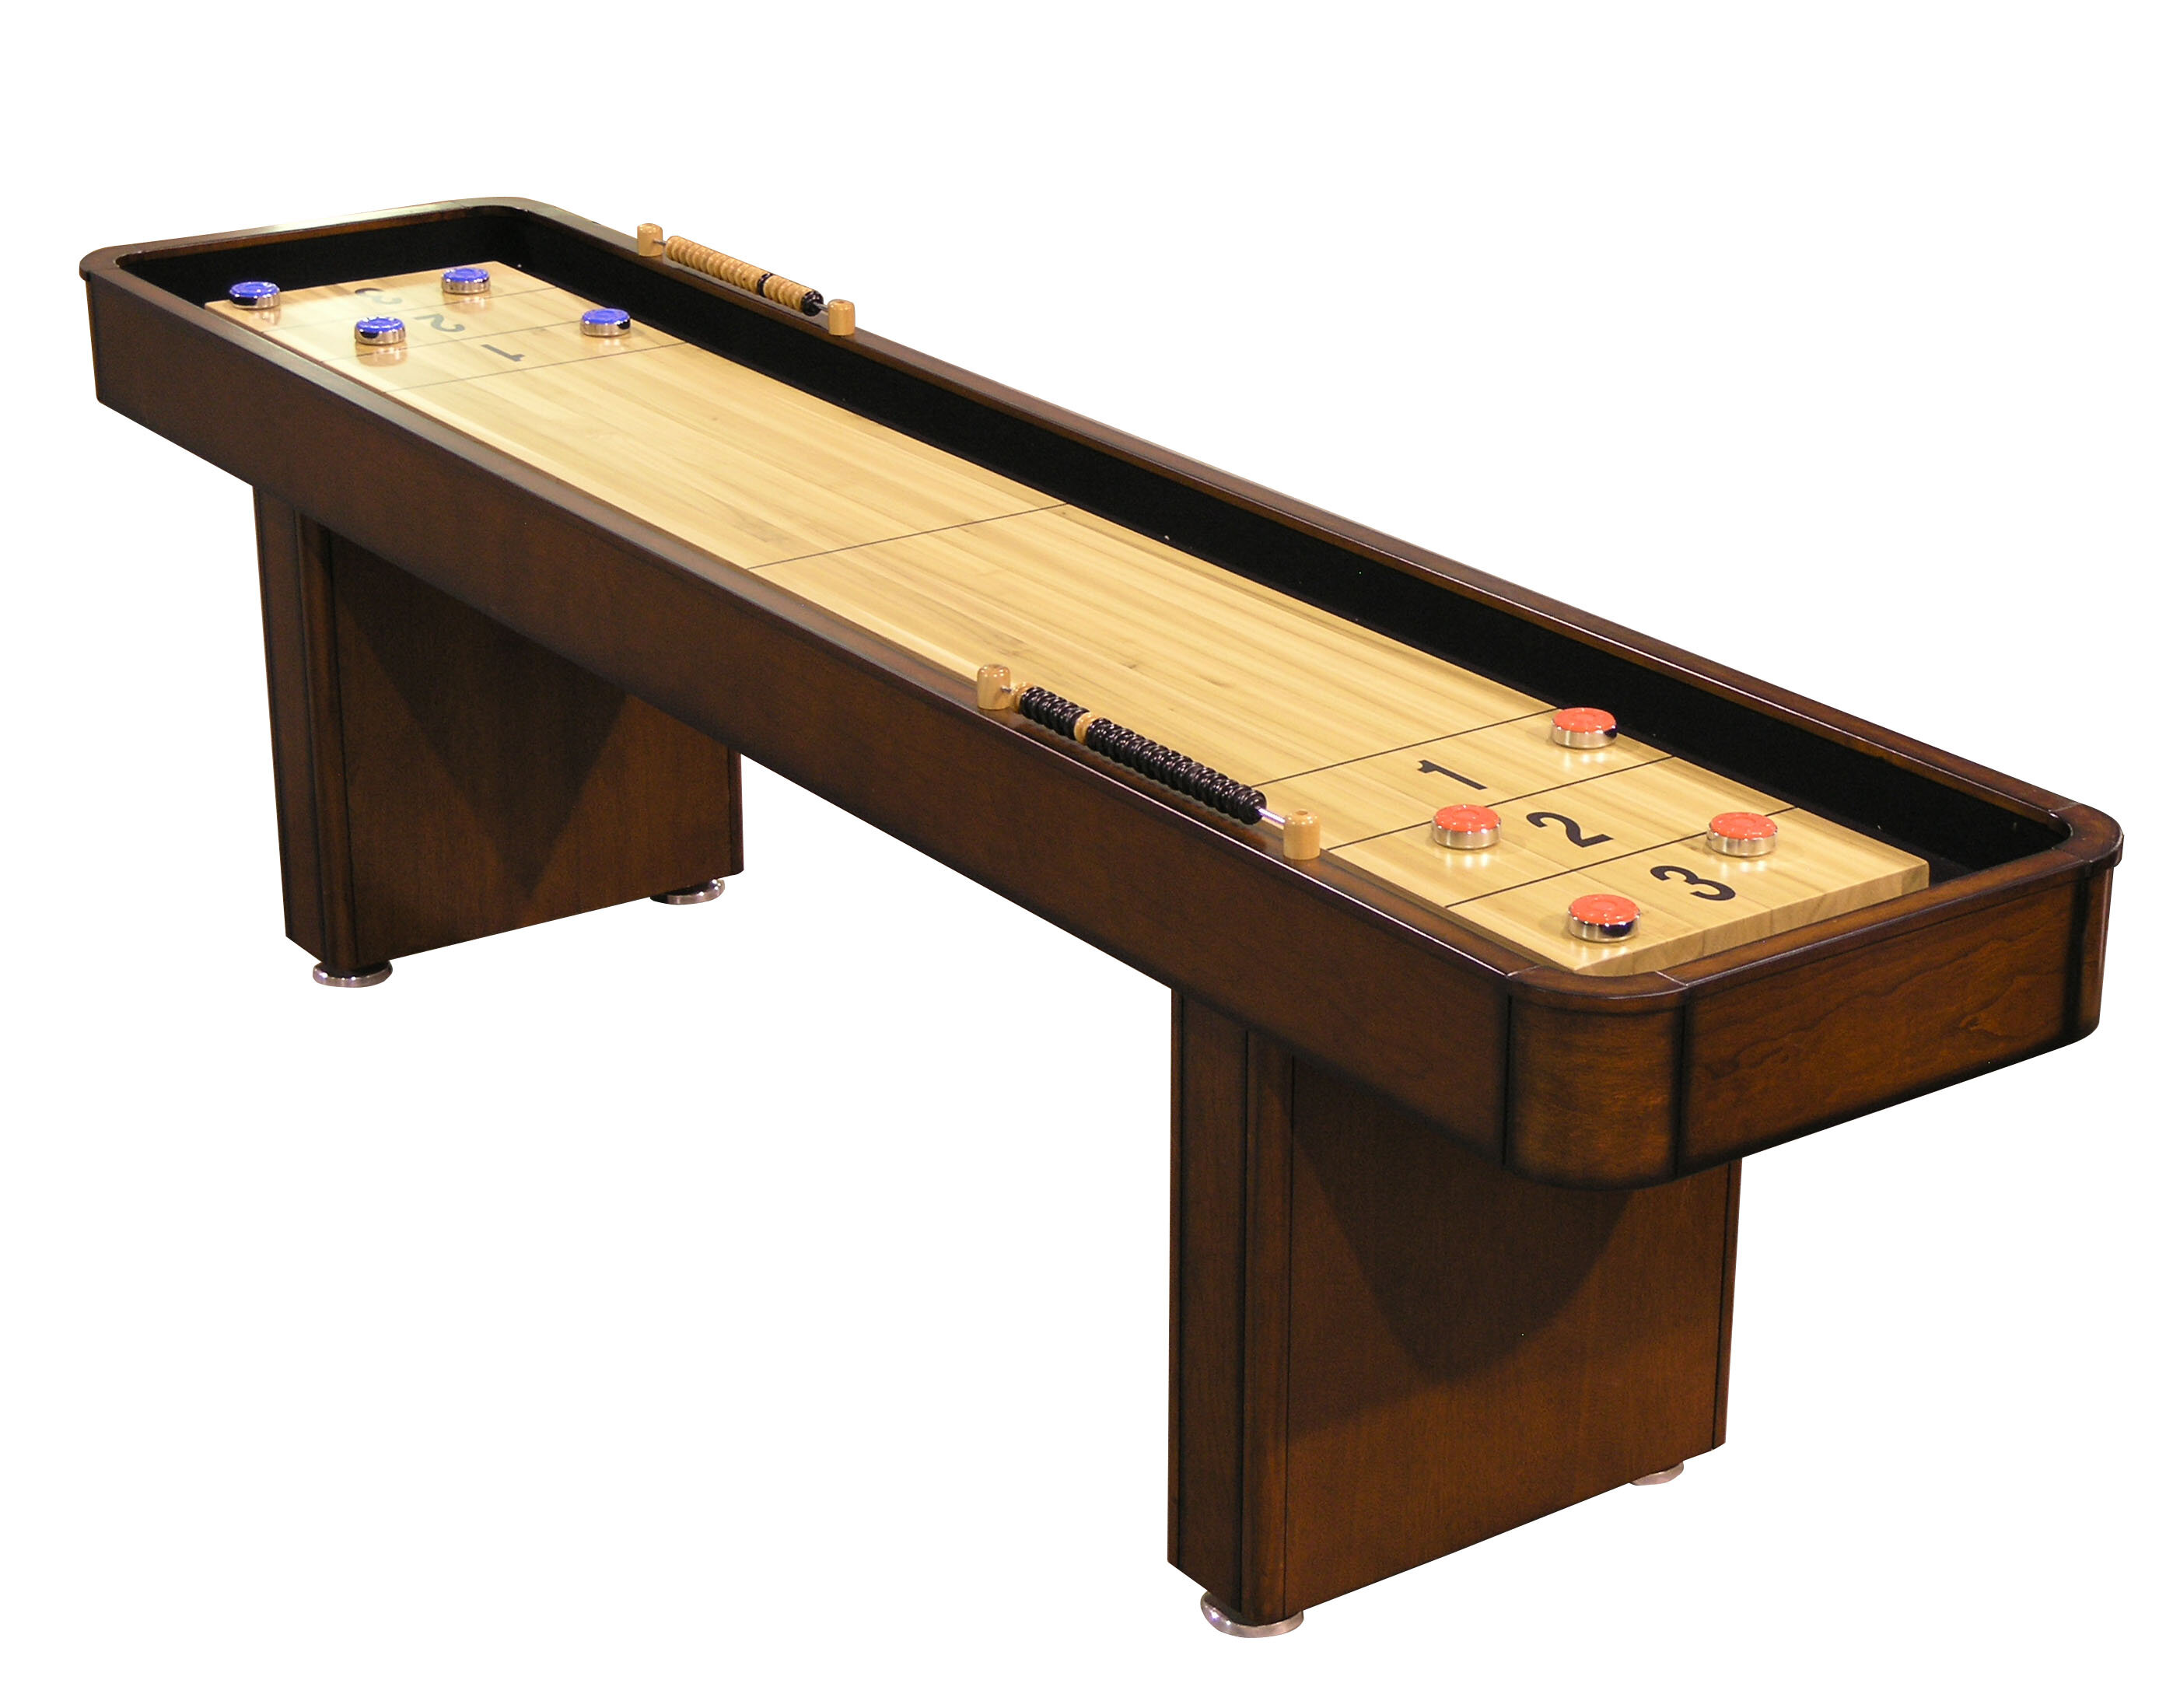 hathaway furniture wayfair pdx games table shuffleboard challenger reviews